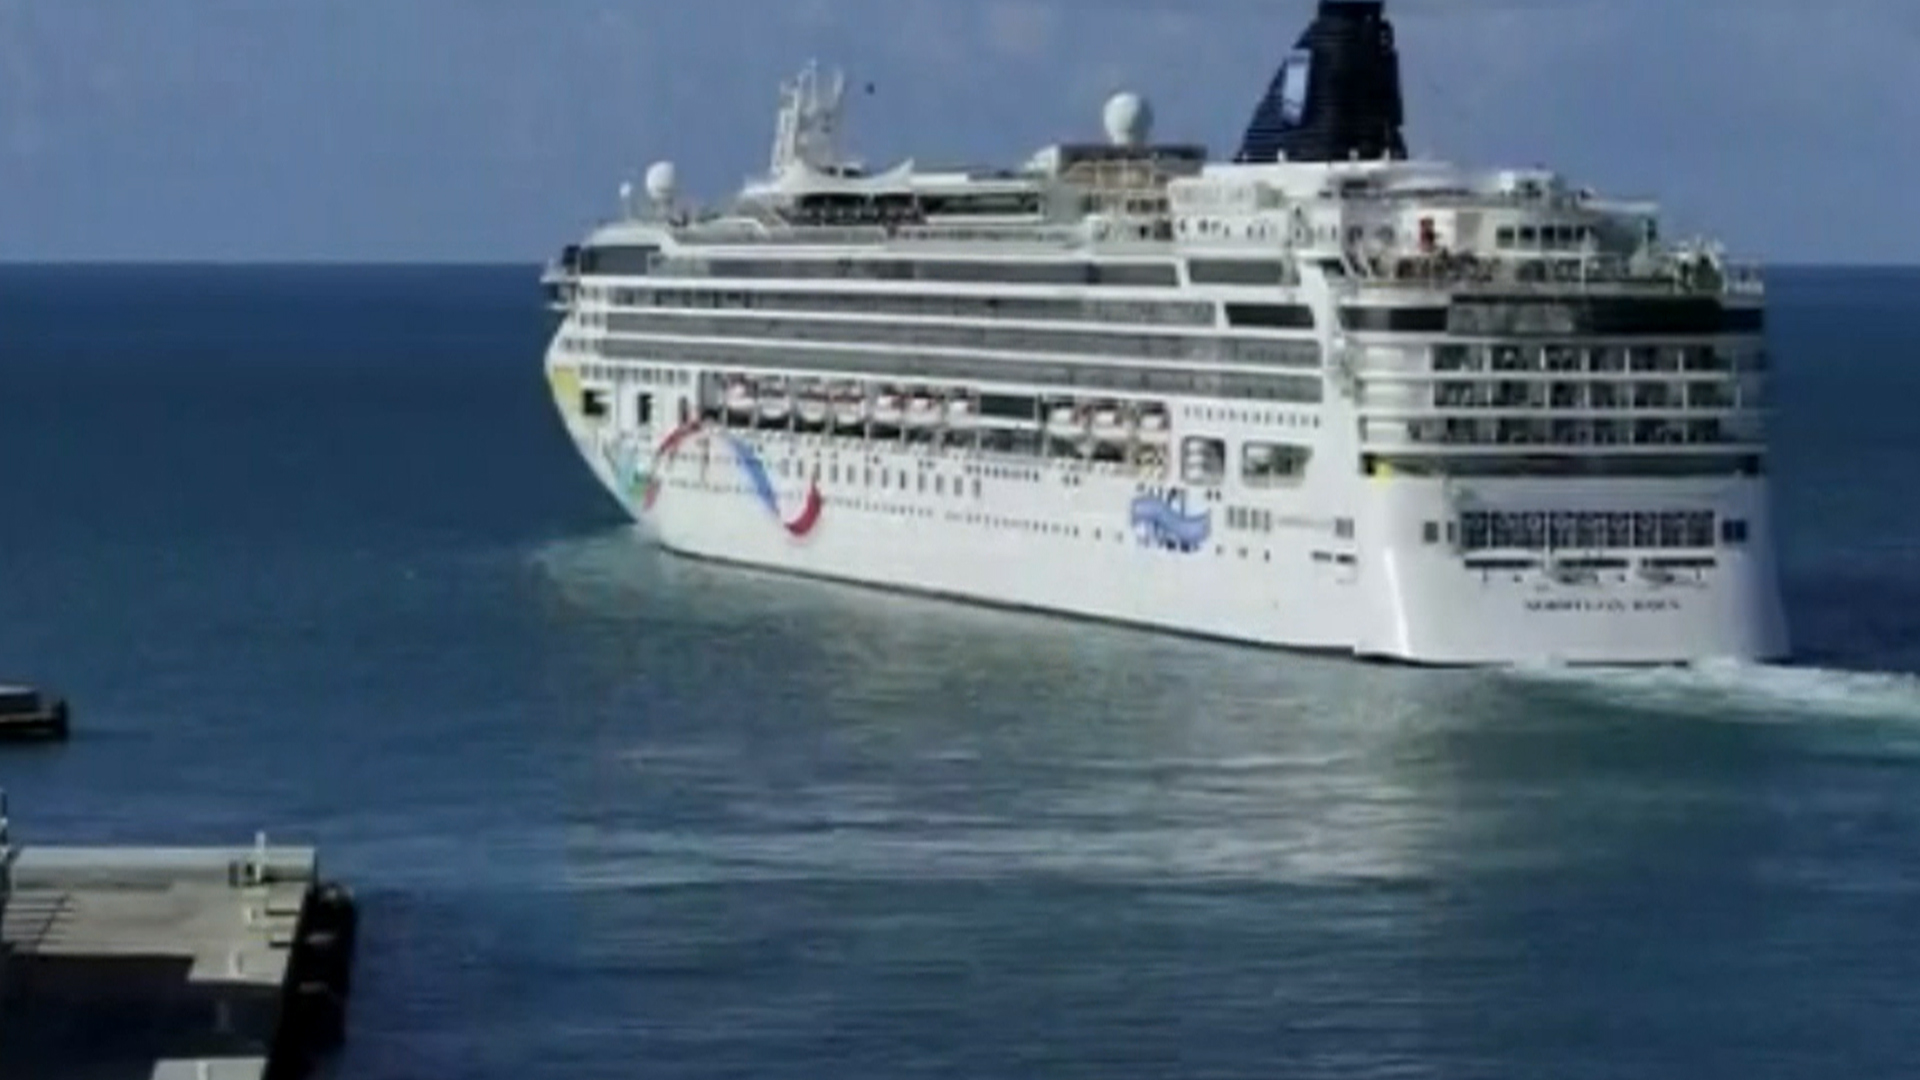 Norwegian Dawn Cruise Ship Loses Control Runs Aground Off Bermuda - Cruise ship dawn